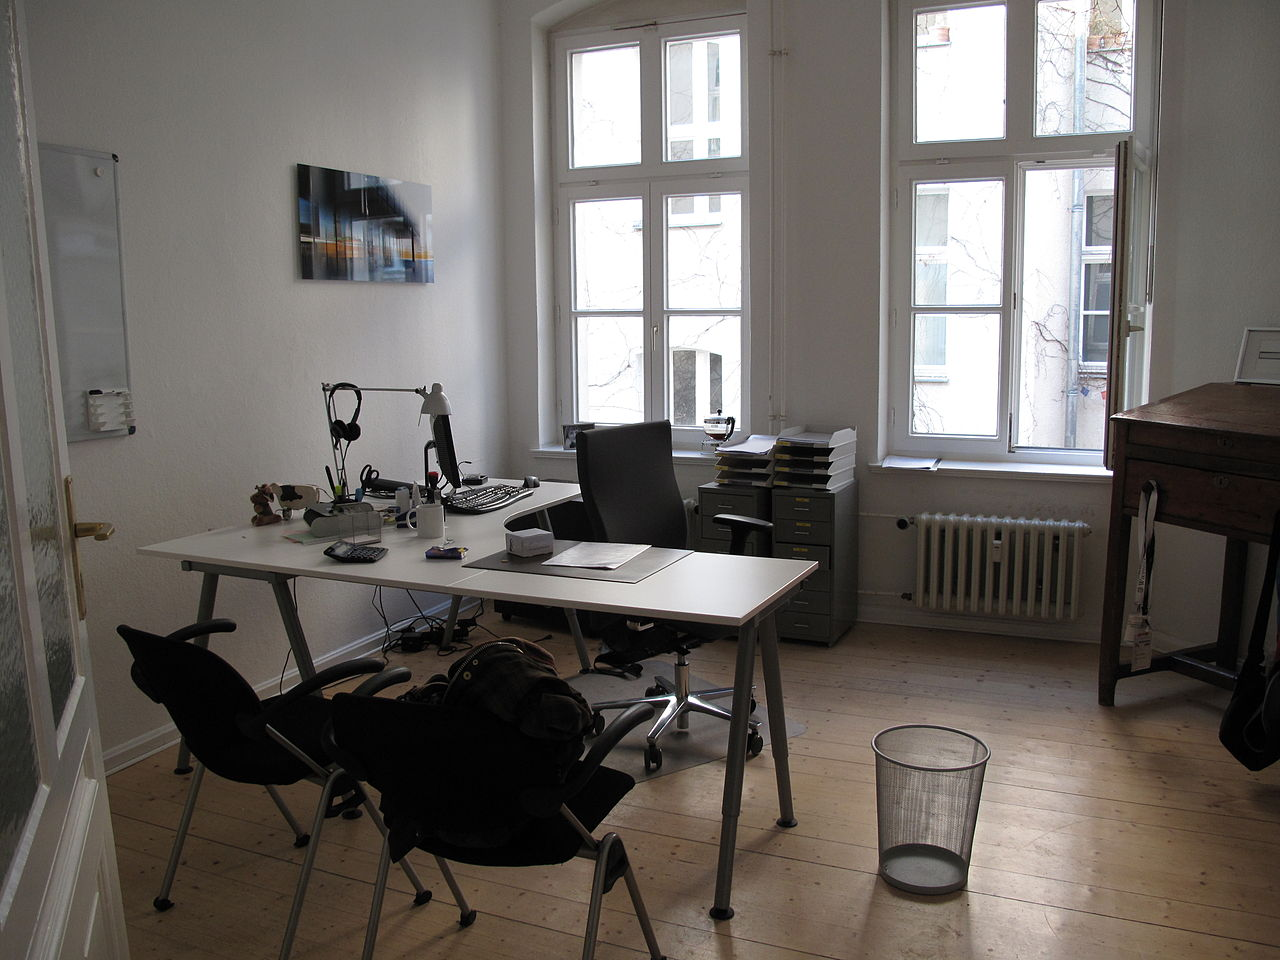 File chapters meeting 2011 in berlin office of the for Director office interior design